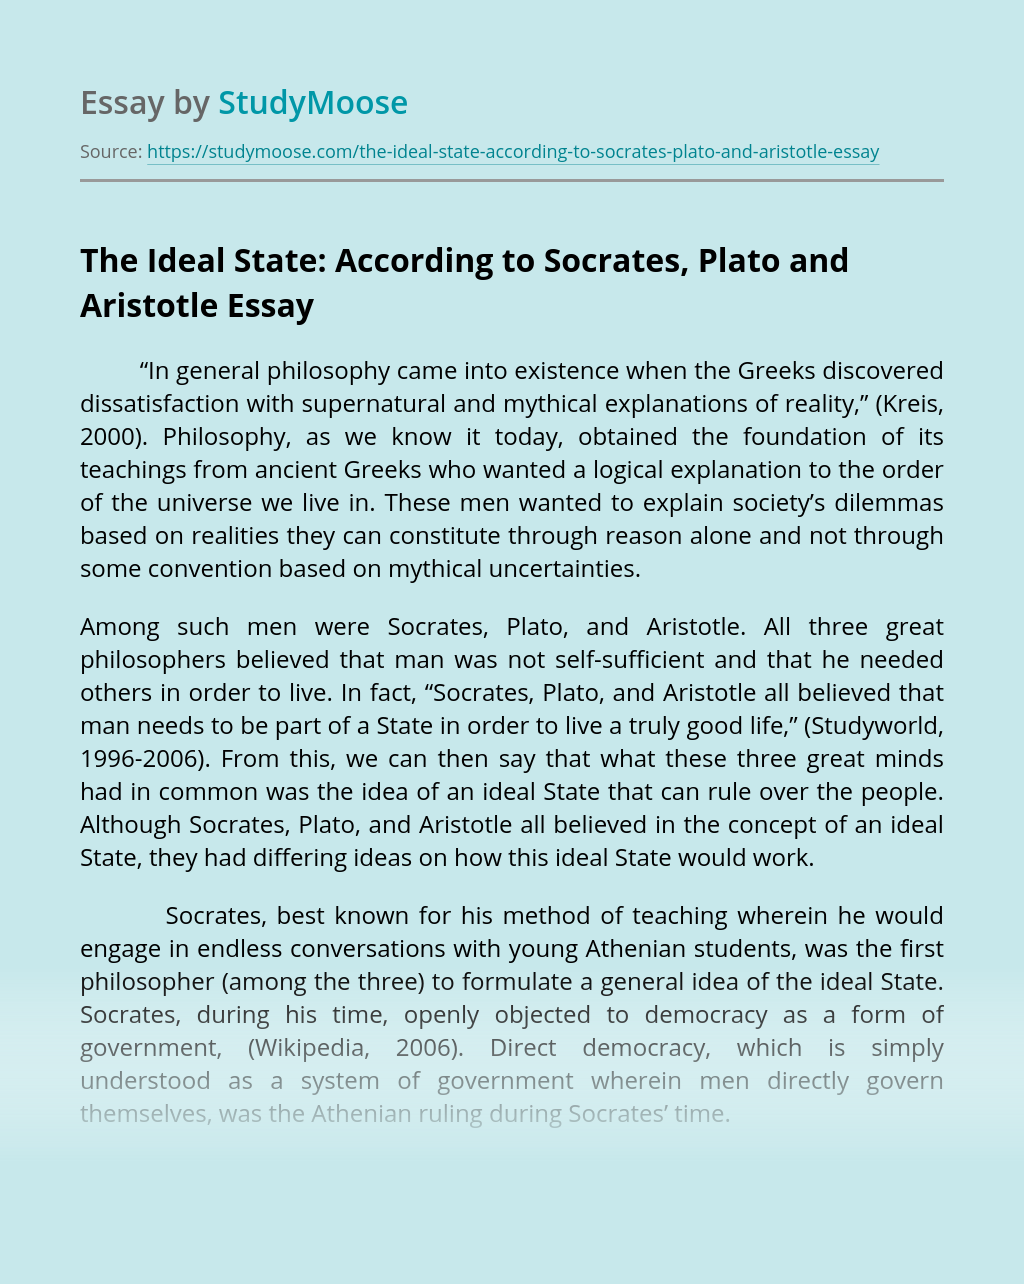 The Ideal State: According to Socrates, Plato and Aristotle